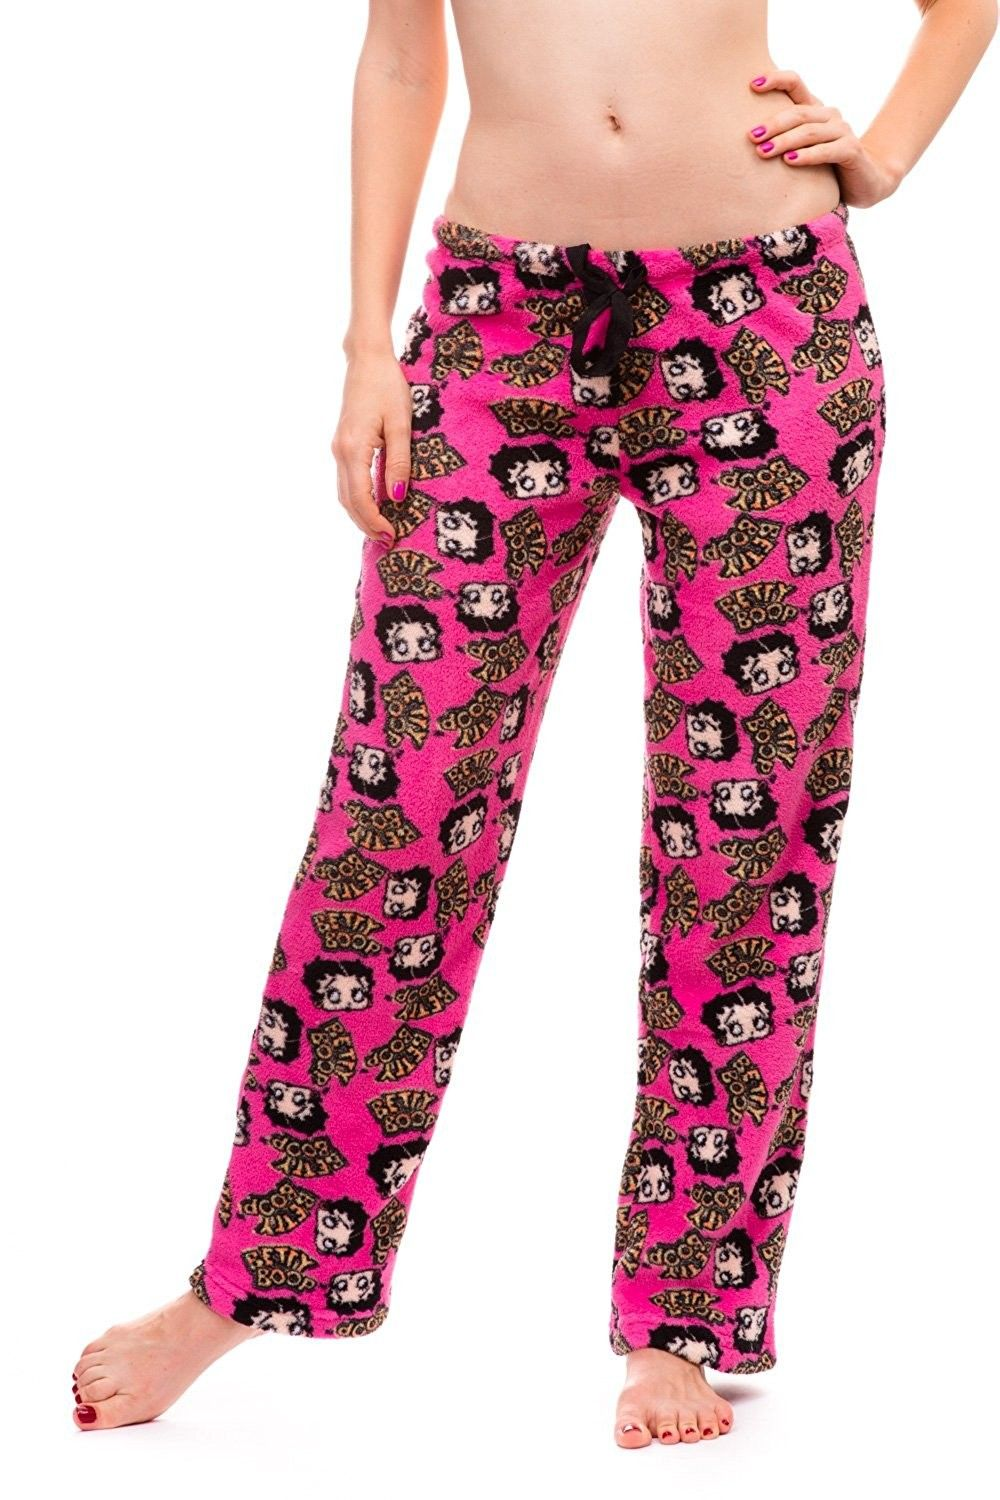 968bee4fb1 Women s Warm and Cozy Plush Pajama Bottoms - Hot Pink - CR128BOU3S7 ...